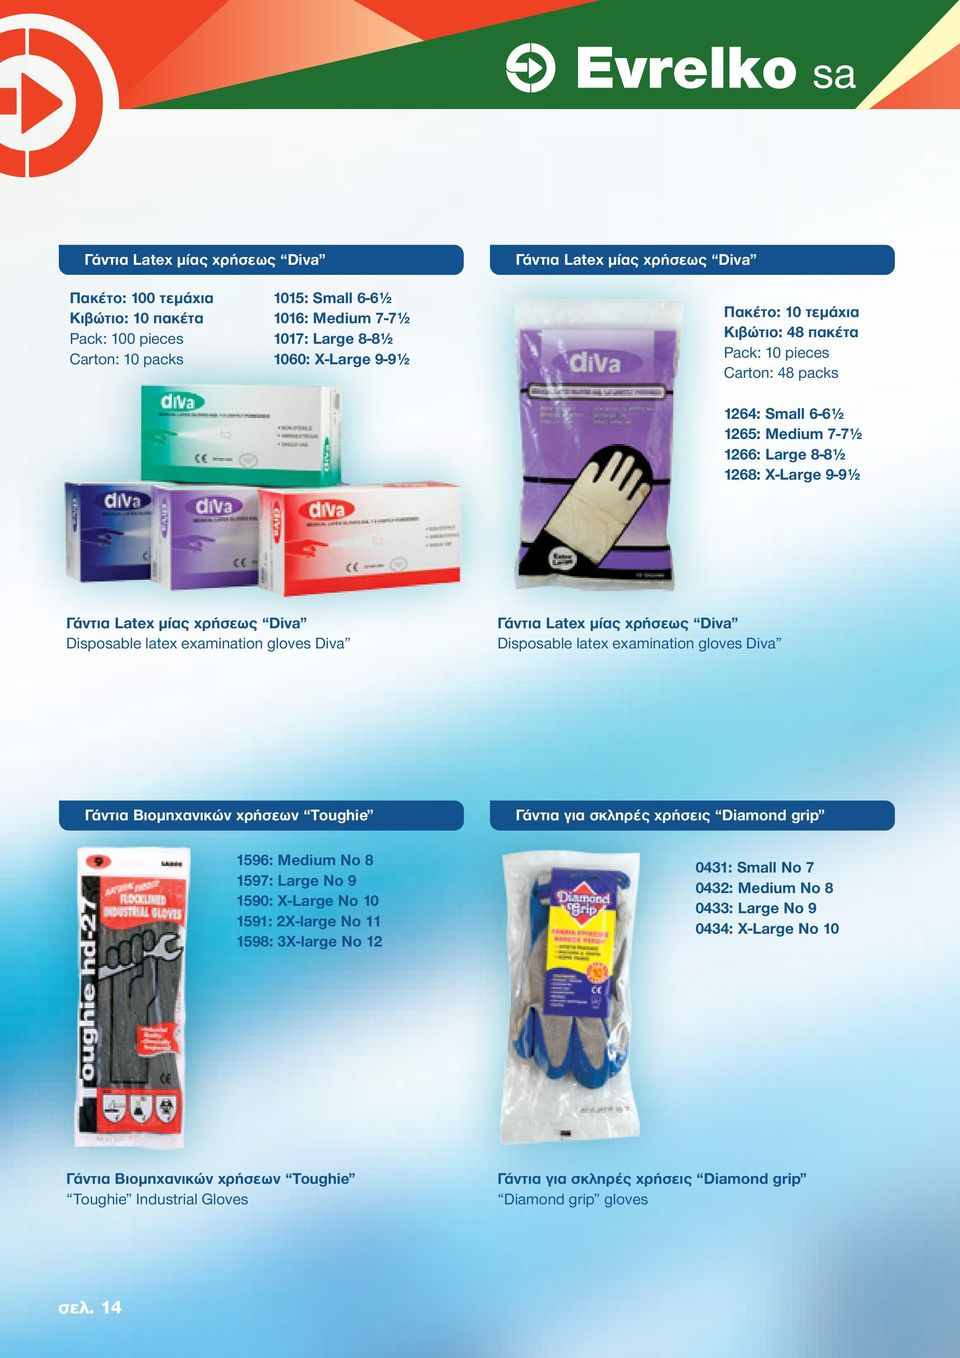 latex examination gloves Diva Γάντια Latex μίας χρήσεως Diva Disposable latex examination gloves Diva Γάντια Βιομηχανικών χρήσεων Toughie 1596: Medium No 8 1597: Large No 9 1590: X-Large No 10 1591: